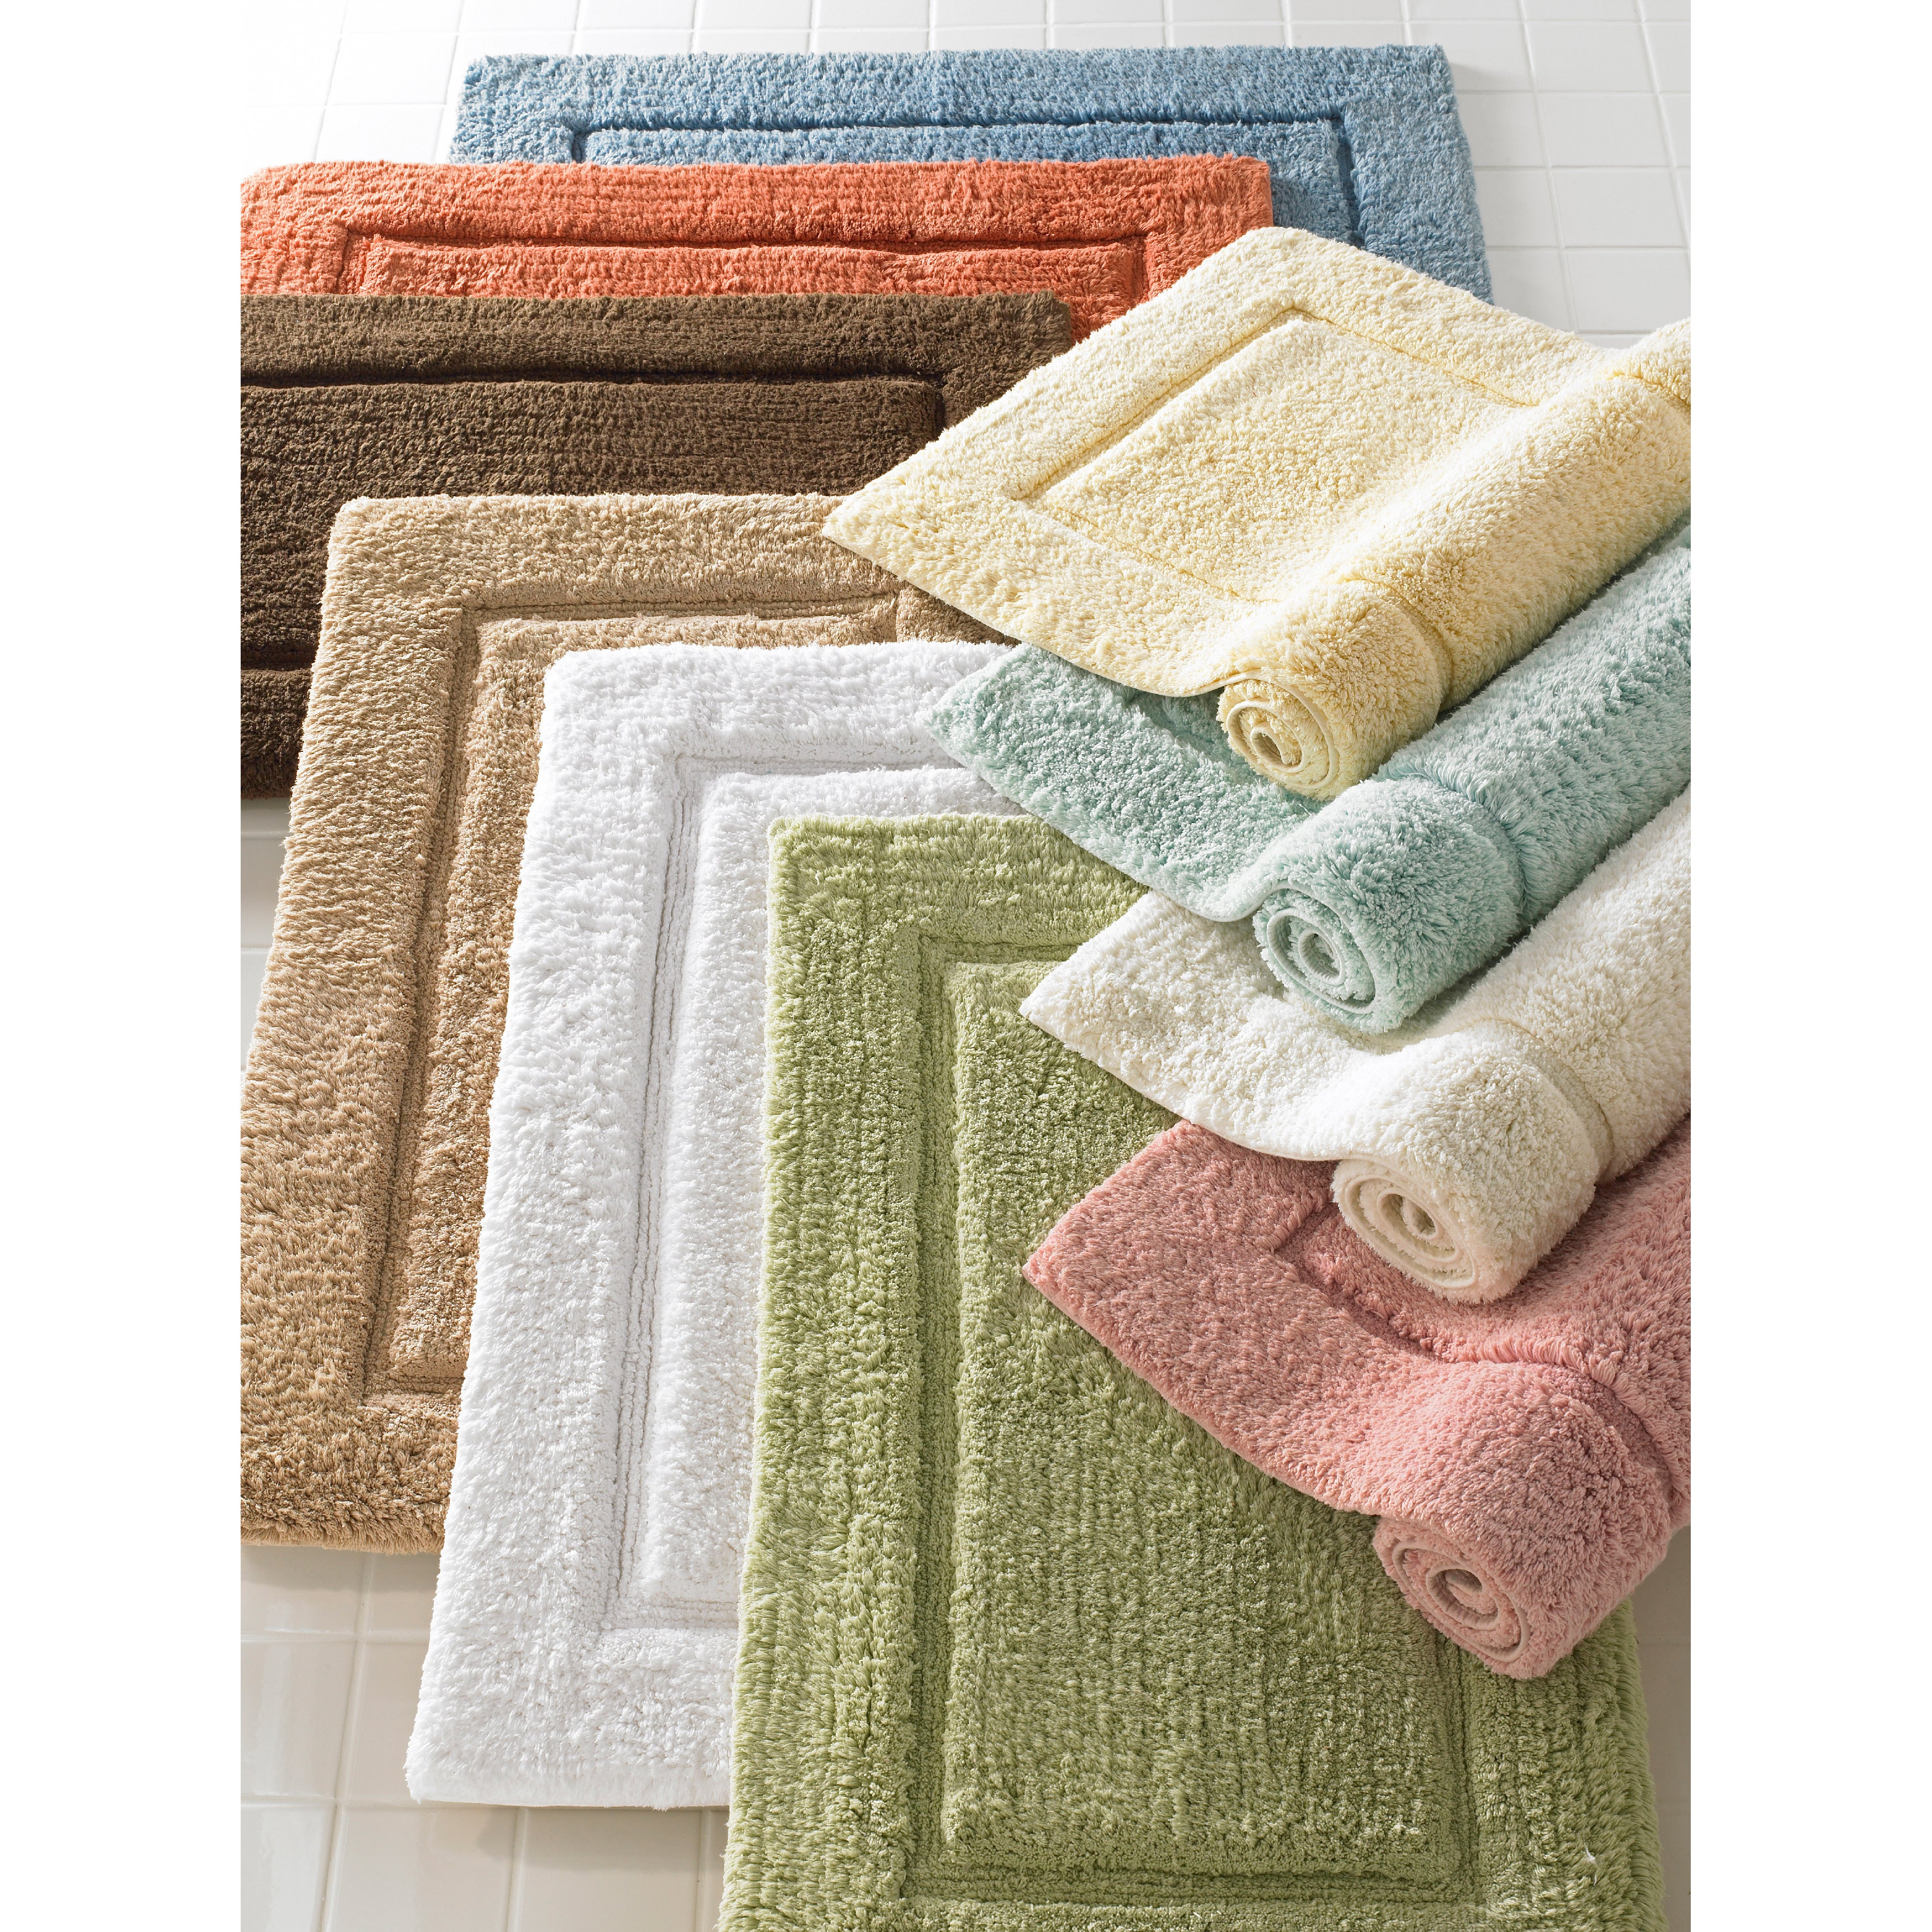 Book of bath rugs large in thailand by sophia for International decor bathroom rugs